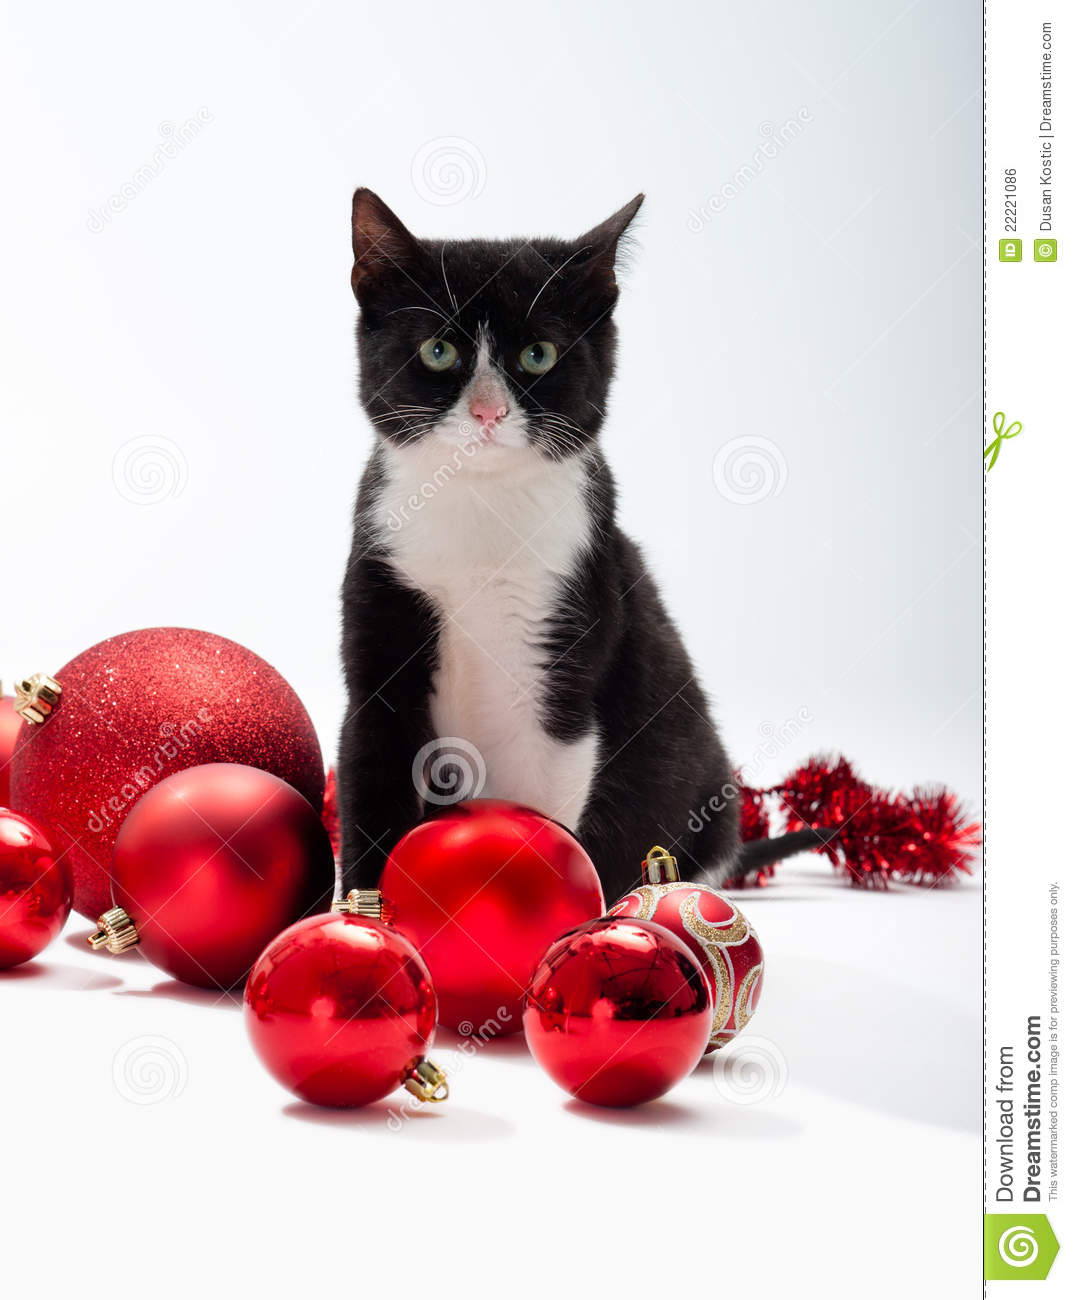 Black Cat Decorations Black Kitten And Christmas Decorations Royalty Free Stock